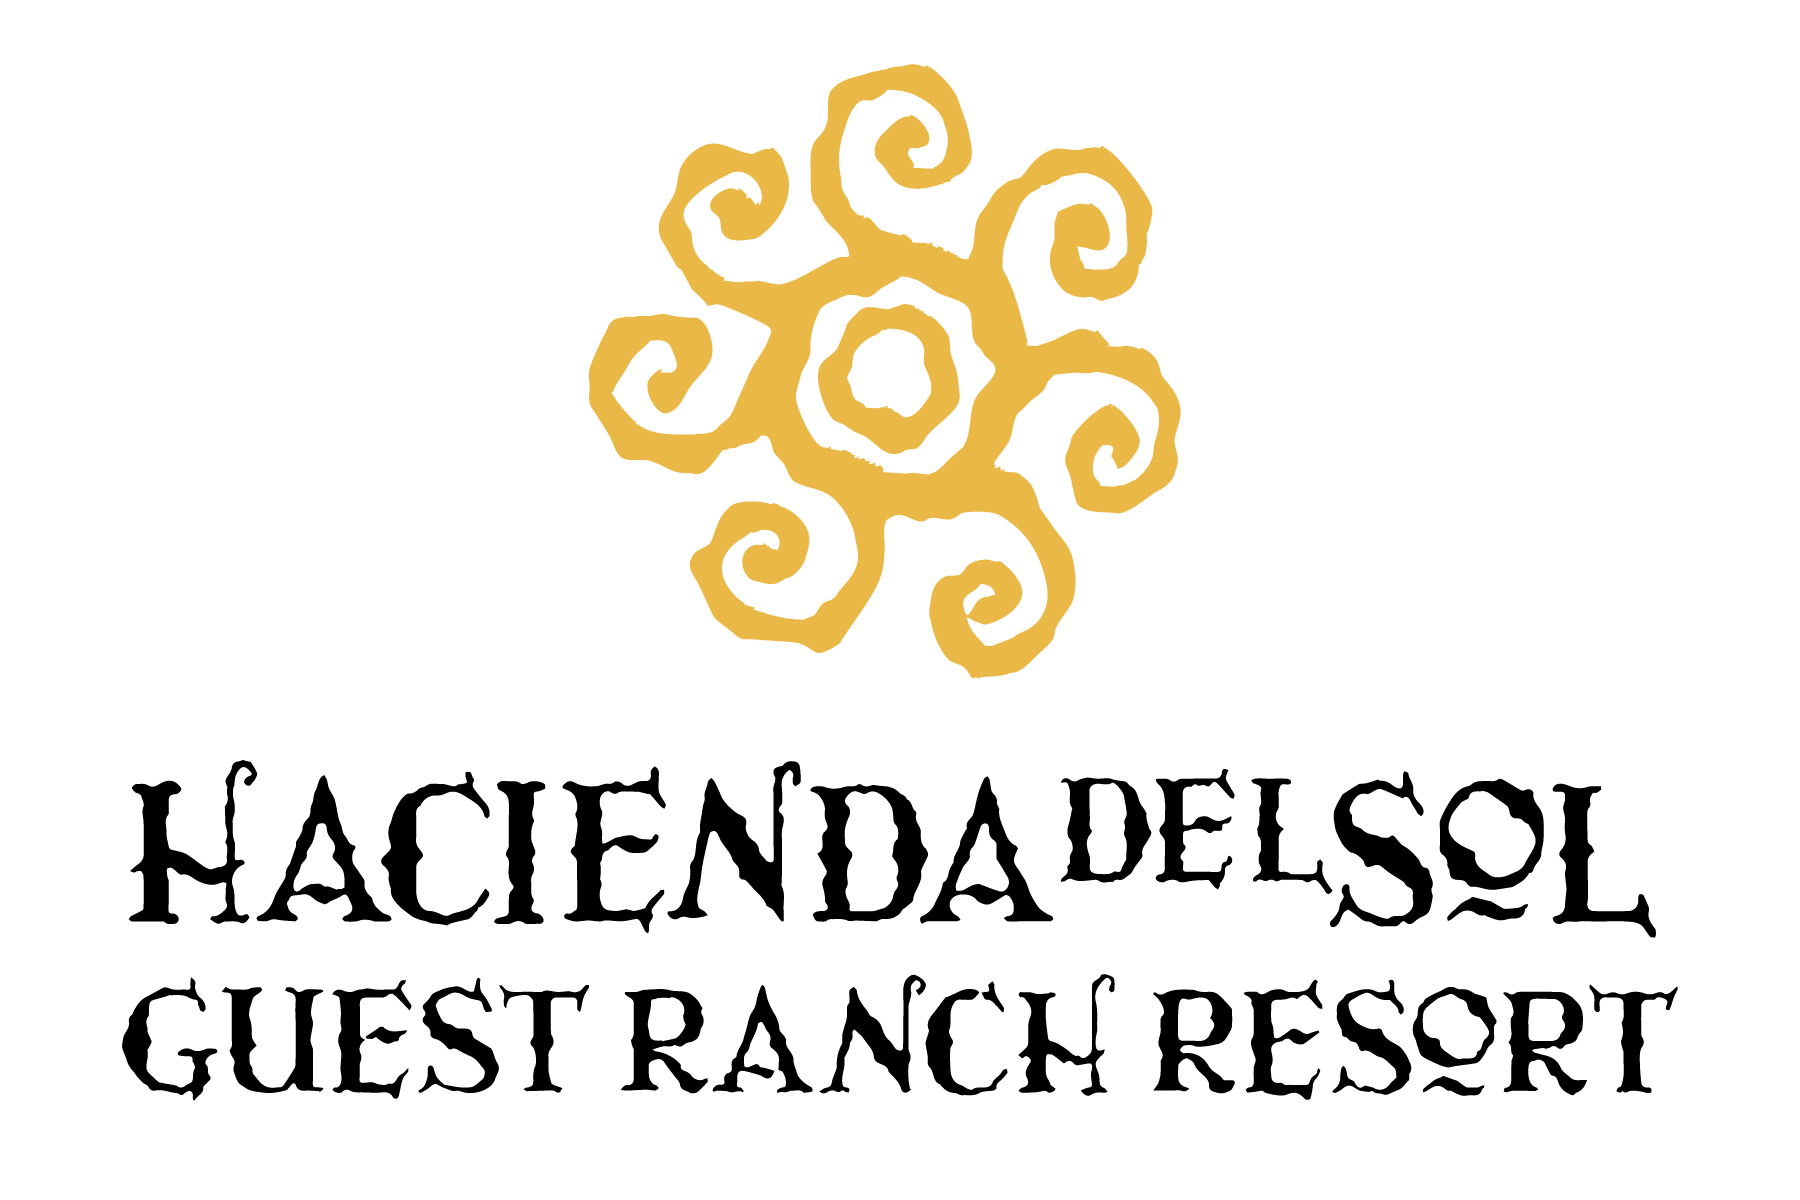 New Chefs Stirring Things Up at Tucson's Hacienda Del Sol Guest Ranch Resort